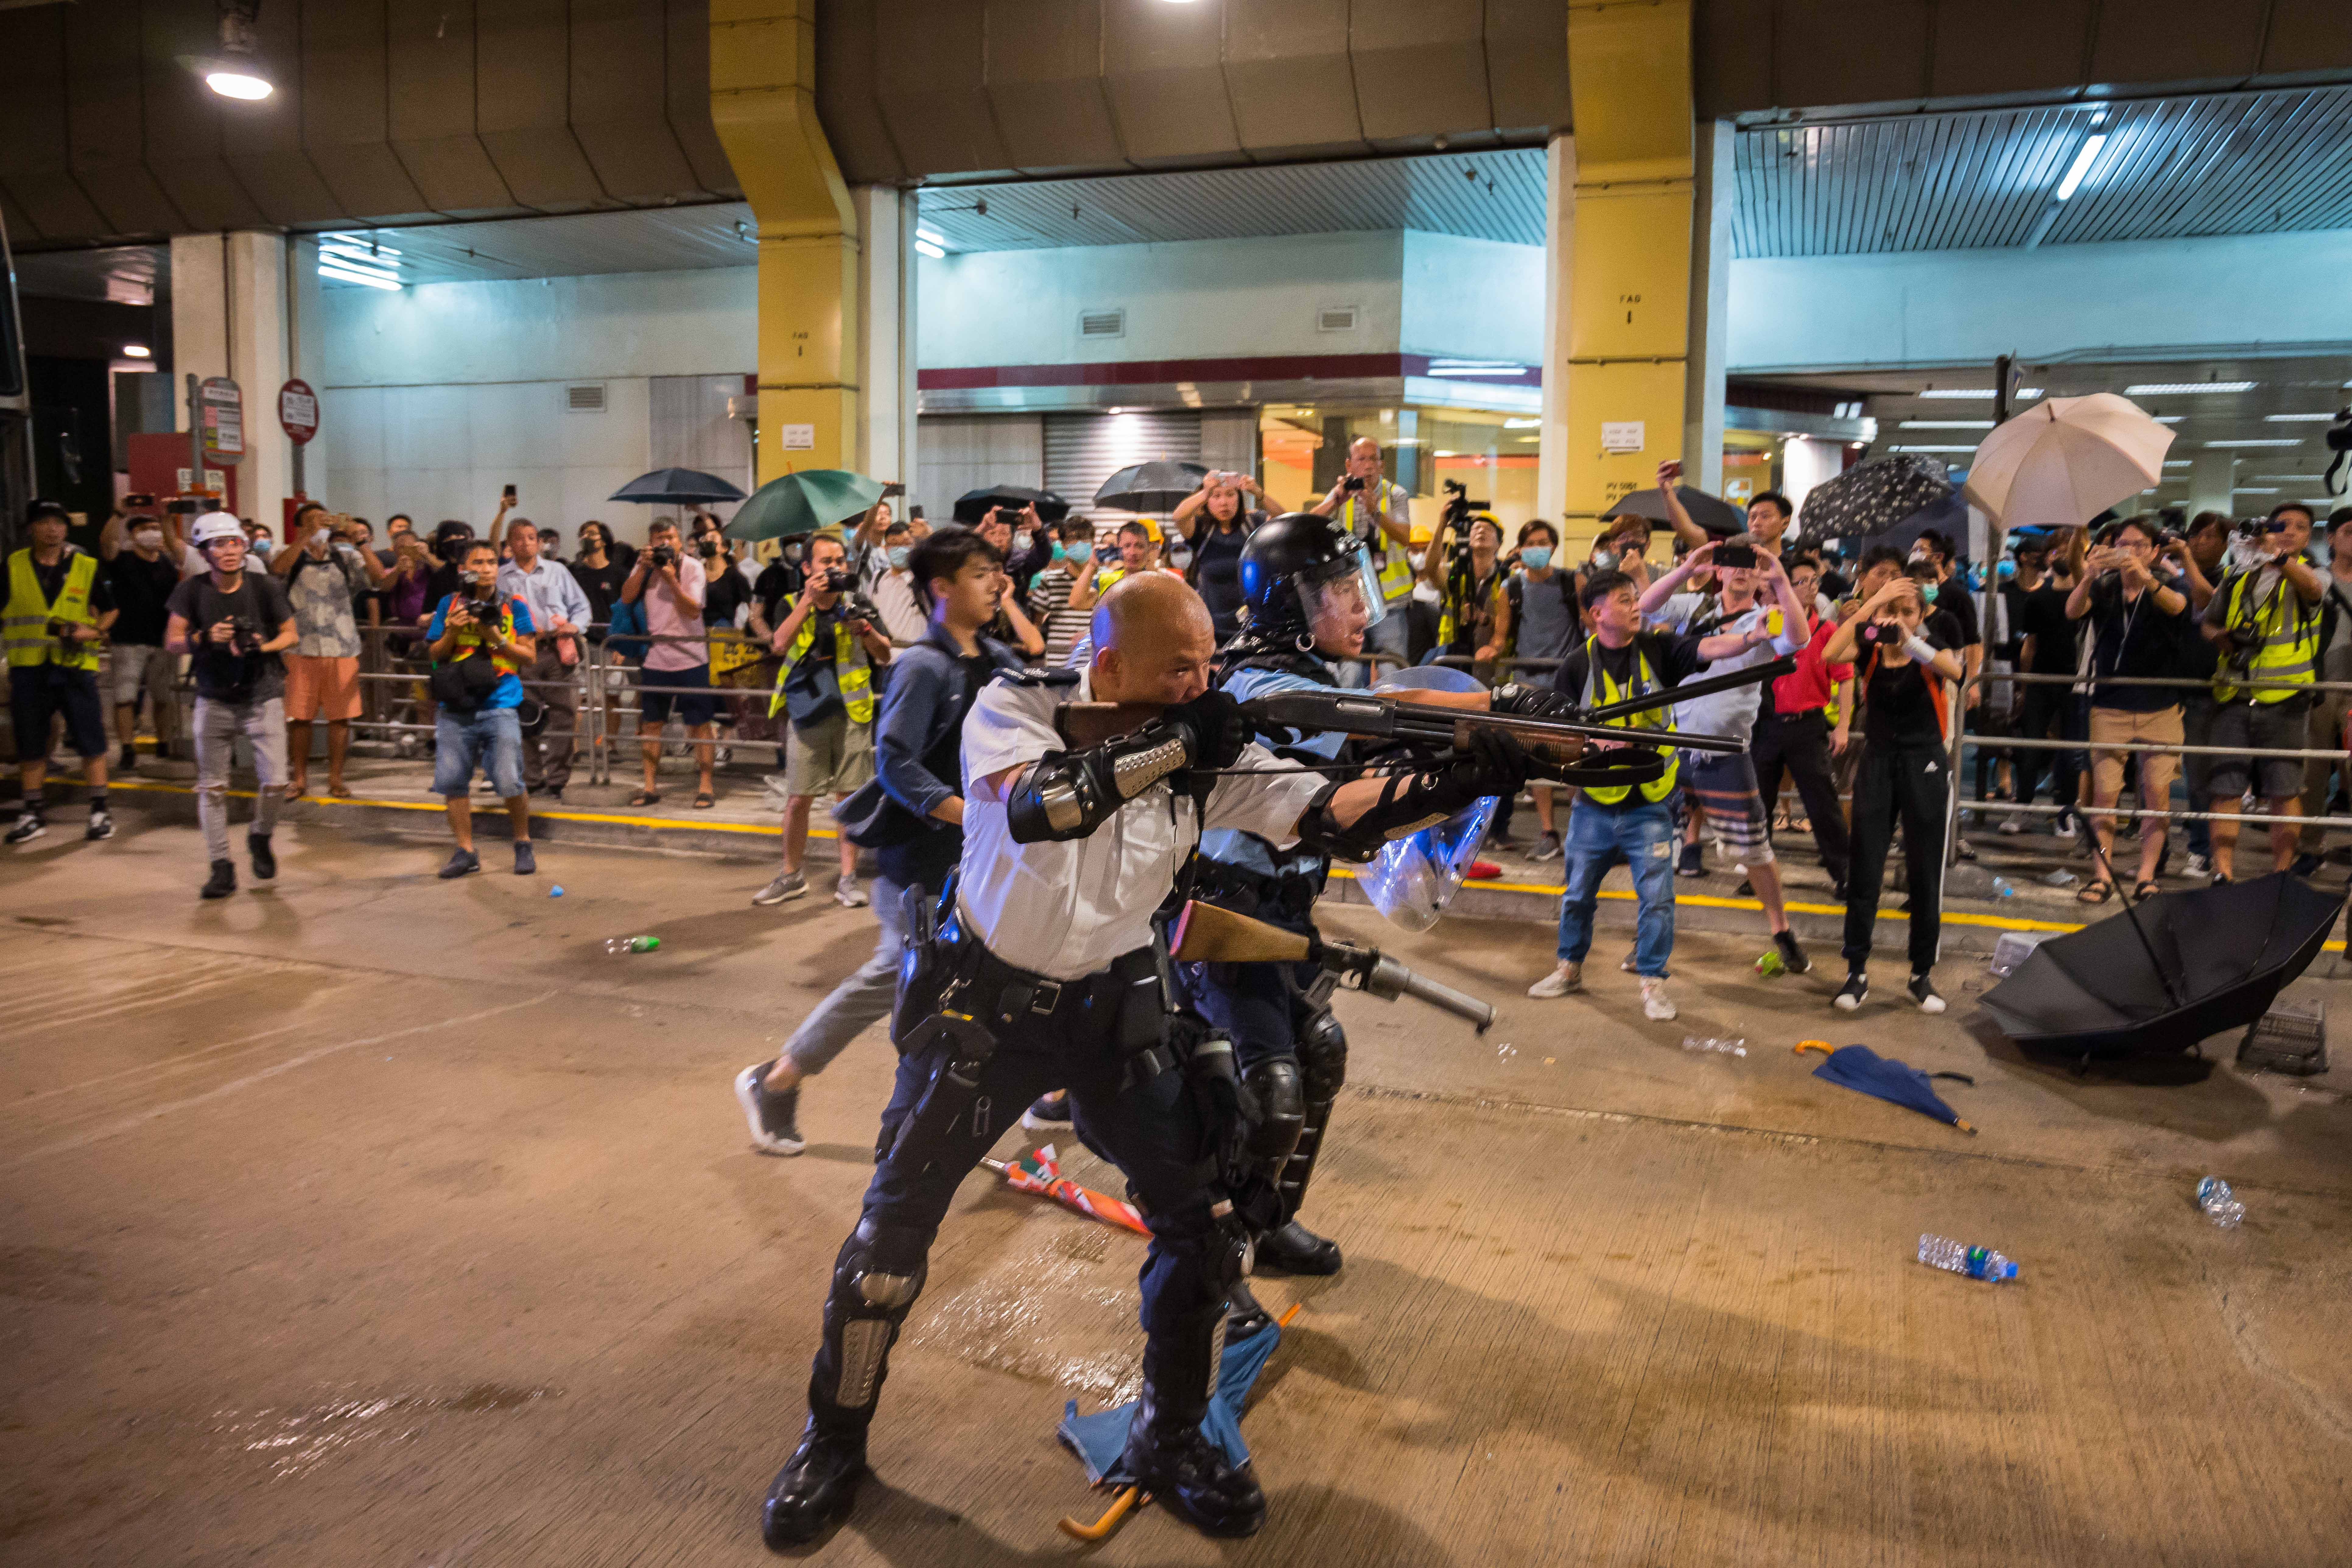 A riot police officer holds a shotgun towards protestors during a demonstration on July 30, 2019 in Hong Kong, China. Protesters have continued weekly rallies on the streets of Hong Kong (Photo by Billy H.C. Kwok/Getty Images)